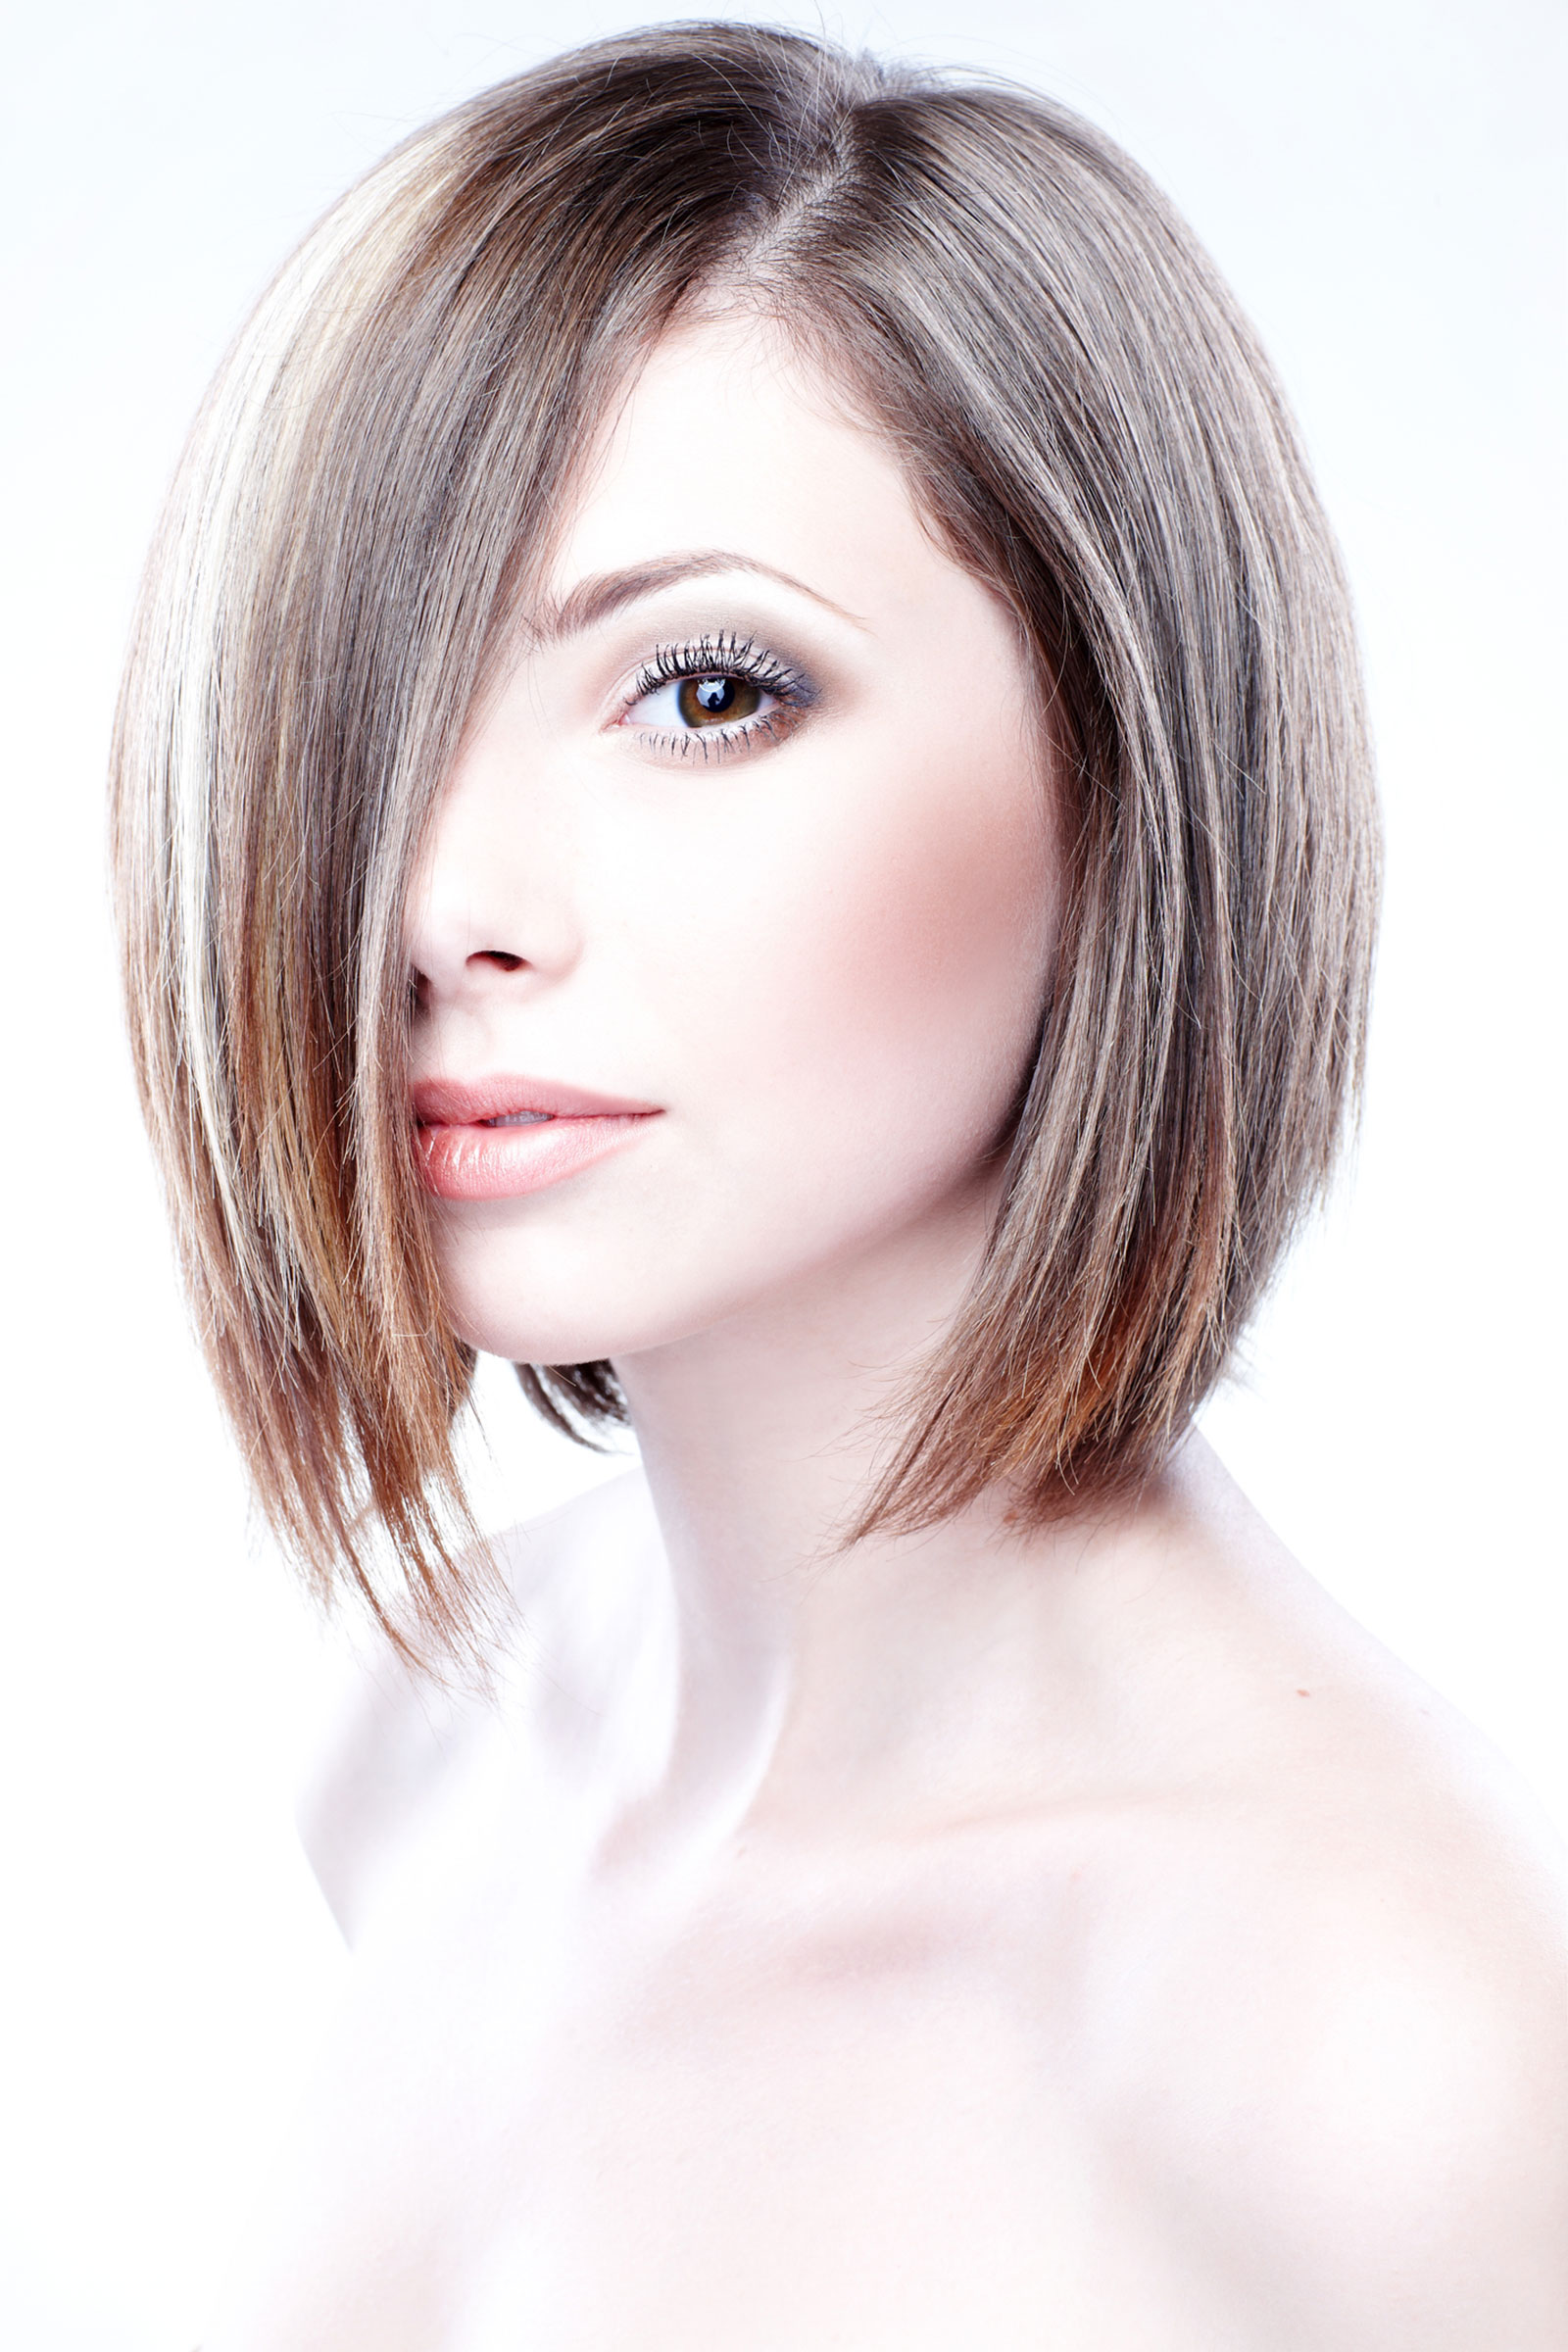 Textured side-part Short bob with balayage